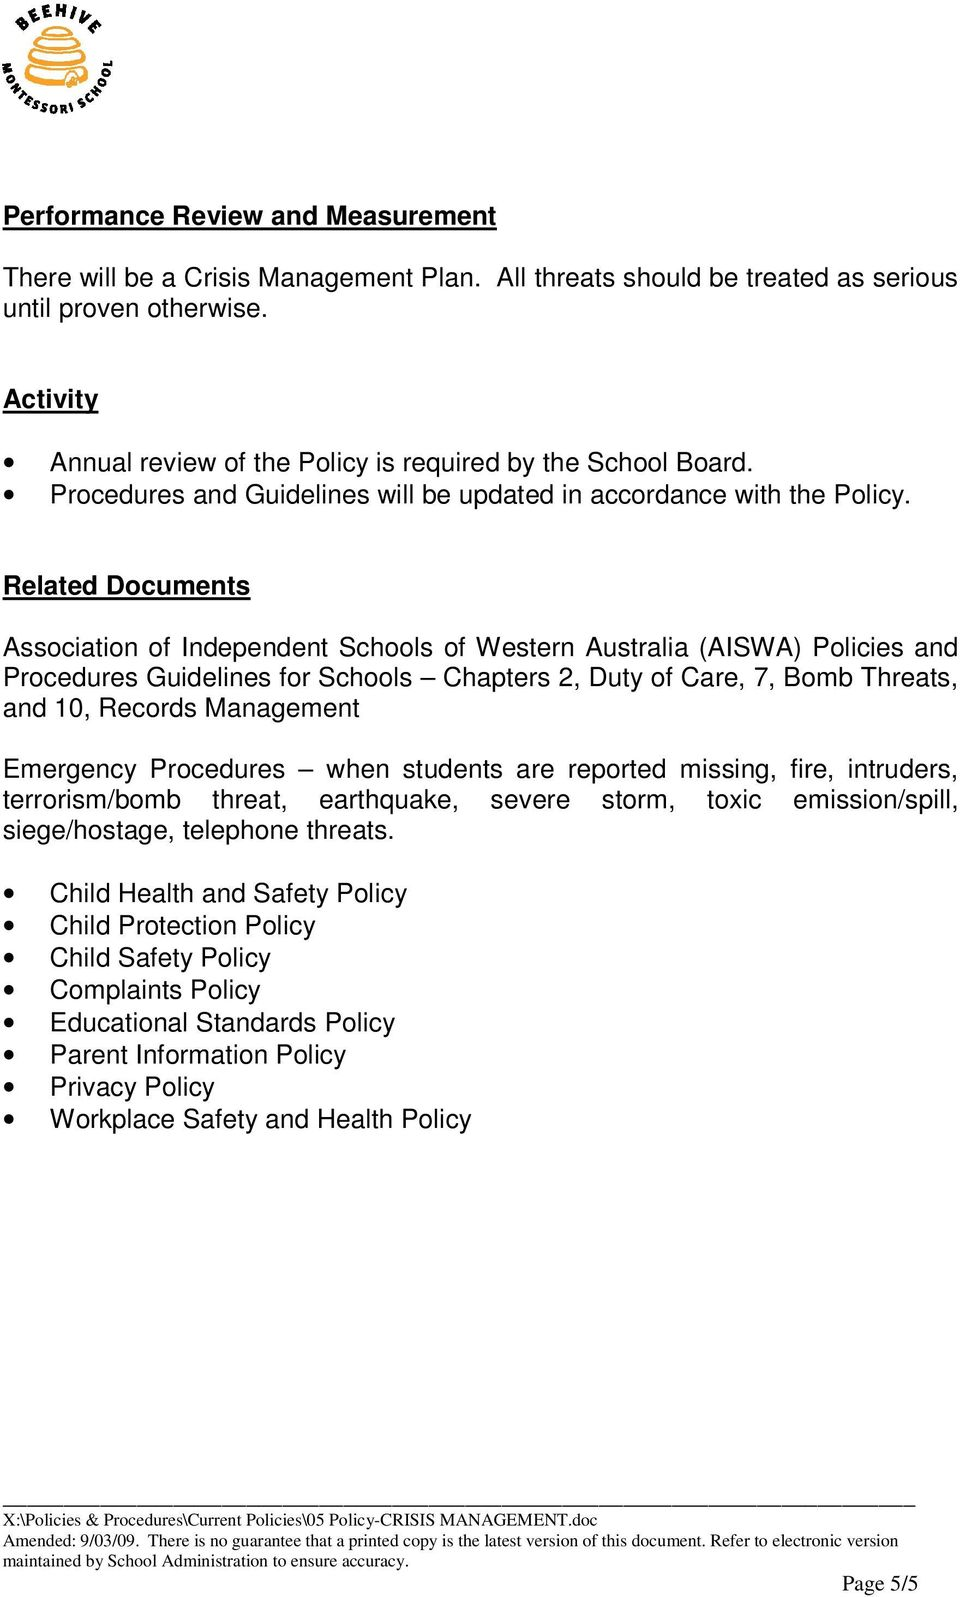 Related Documents Association of Independent Schools of Western Australia (AISWA) Policies and Procedures Guidelines for Schools Chapters 2, Duty of Care, 7, Bomb Threats, and 10, Records Management